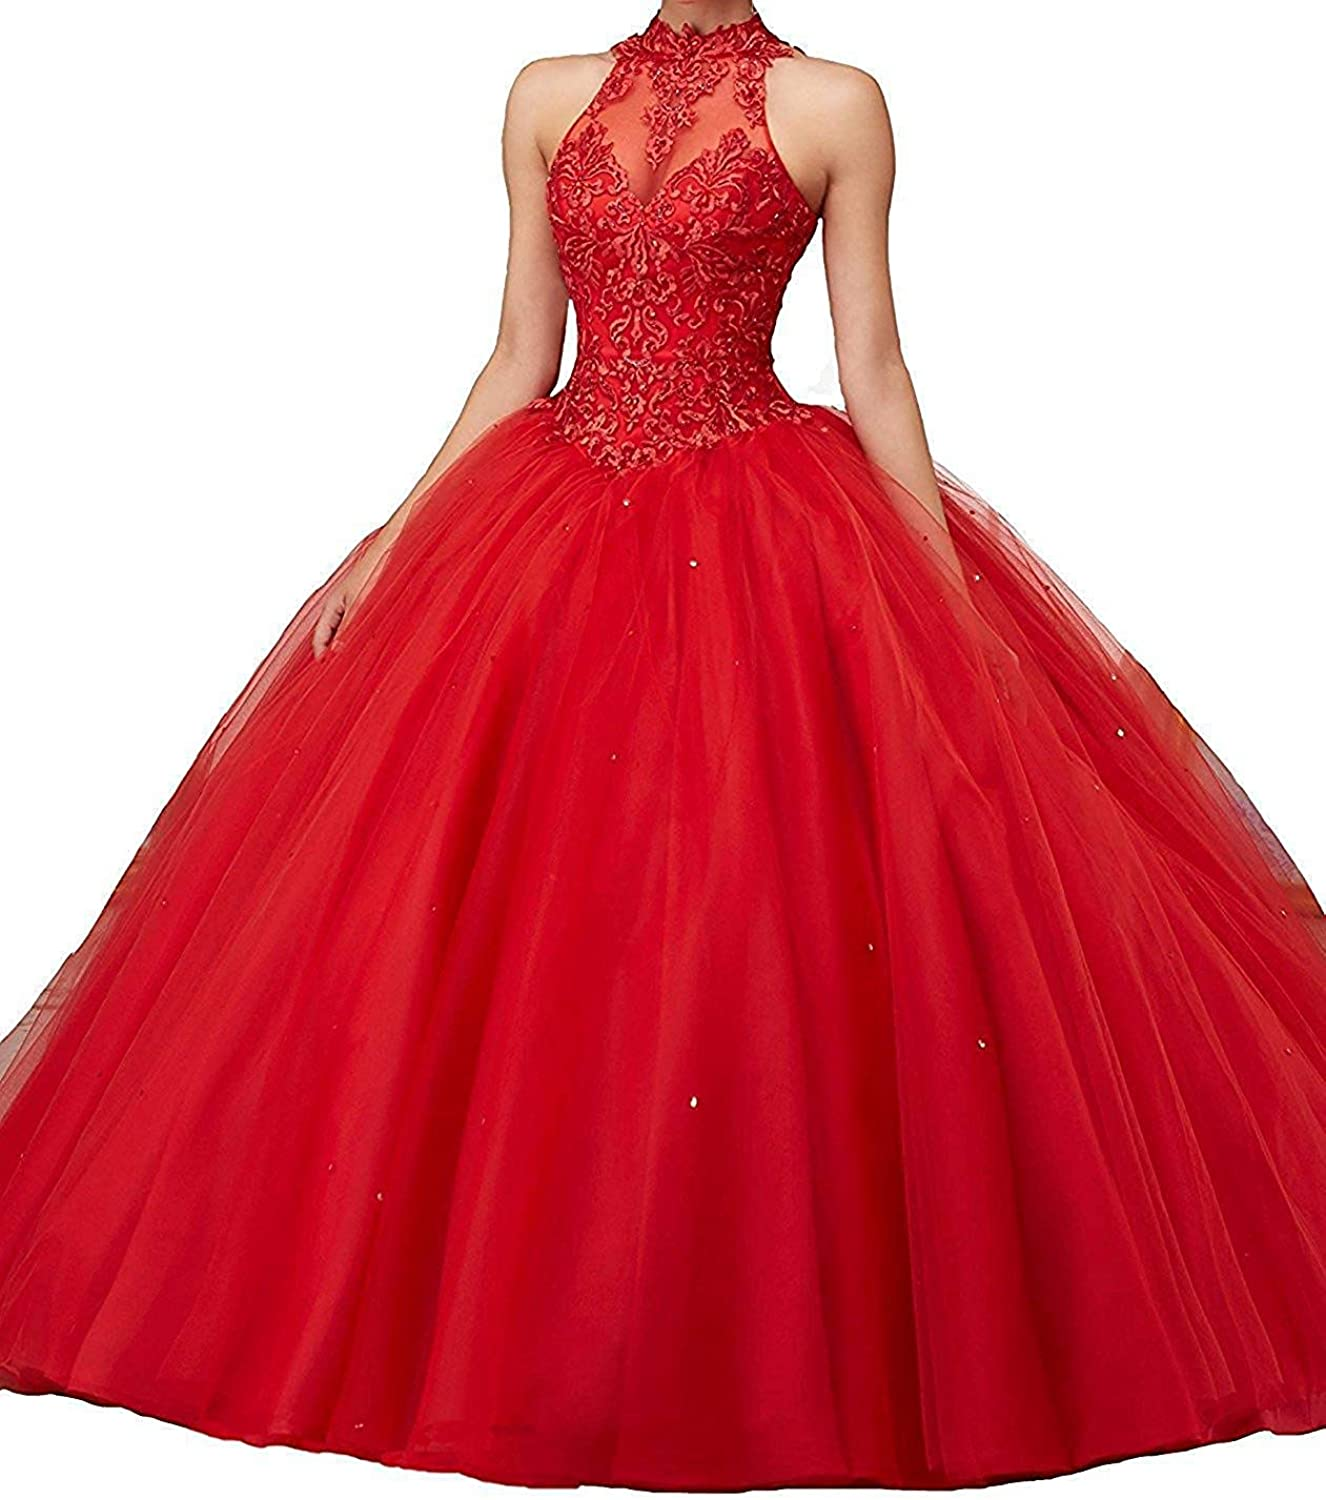 ASBridal Quinceanera Dress High Neck Lace Formal Prom Party Gown Open Back Sweet 16 Quinceanera Dresses